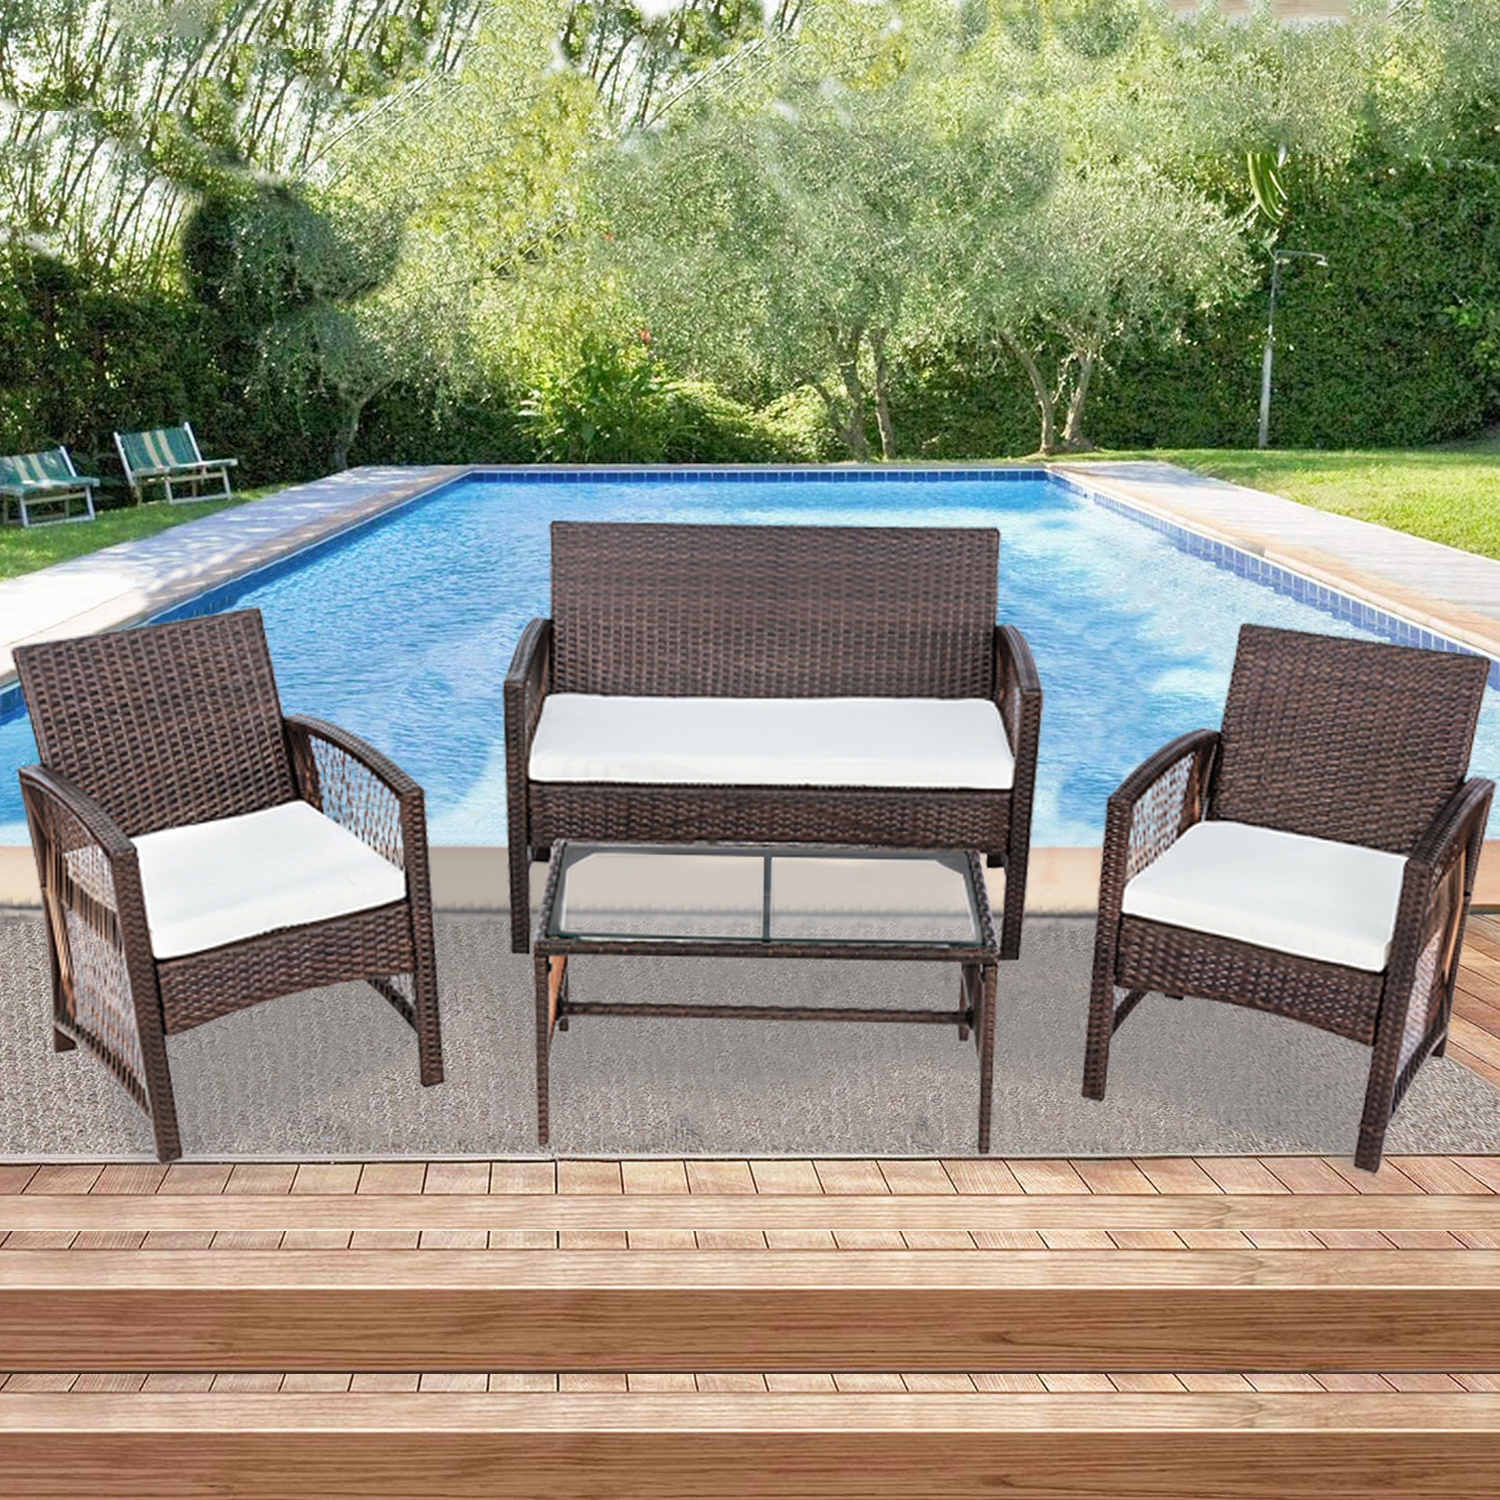 Rattan Patio Furniture Sets Clearance, 4 Piece Outdoor ...